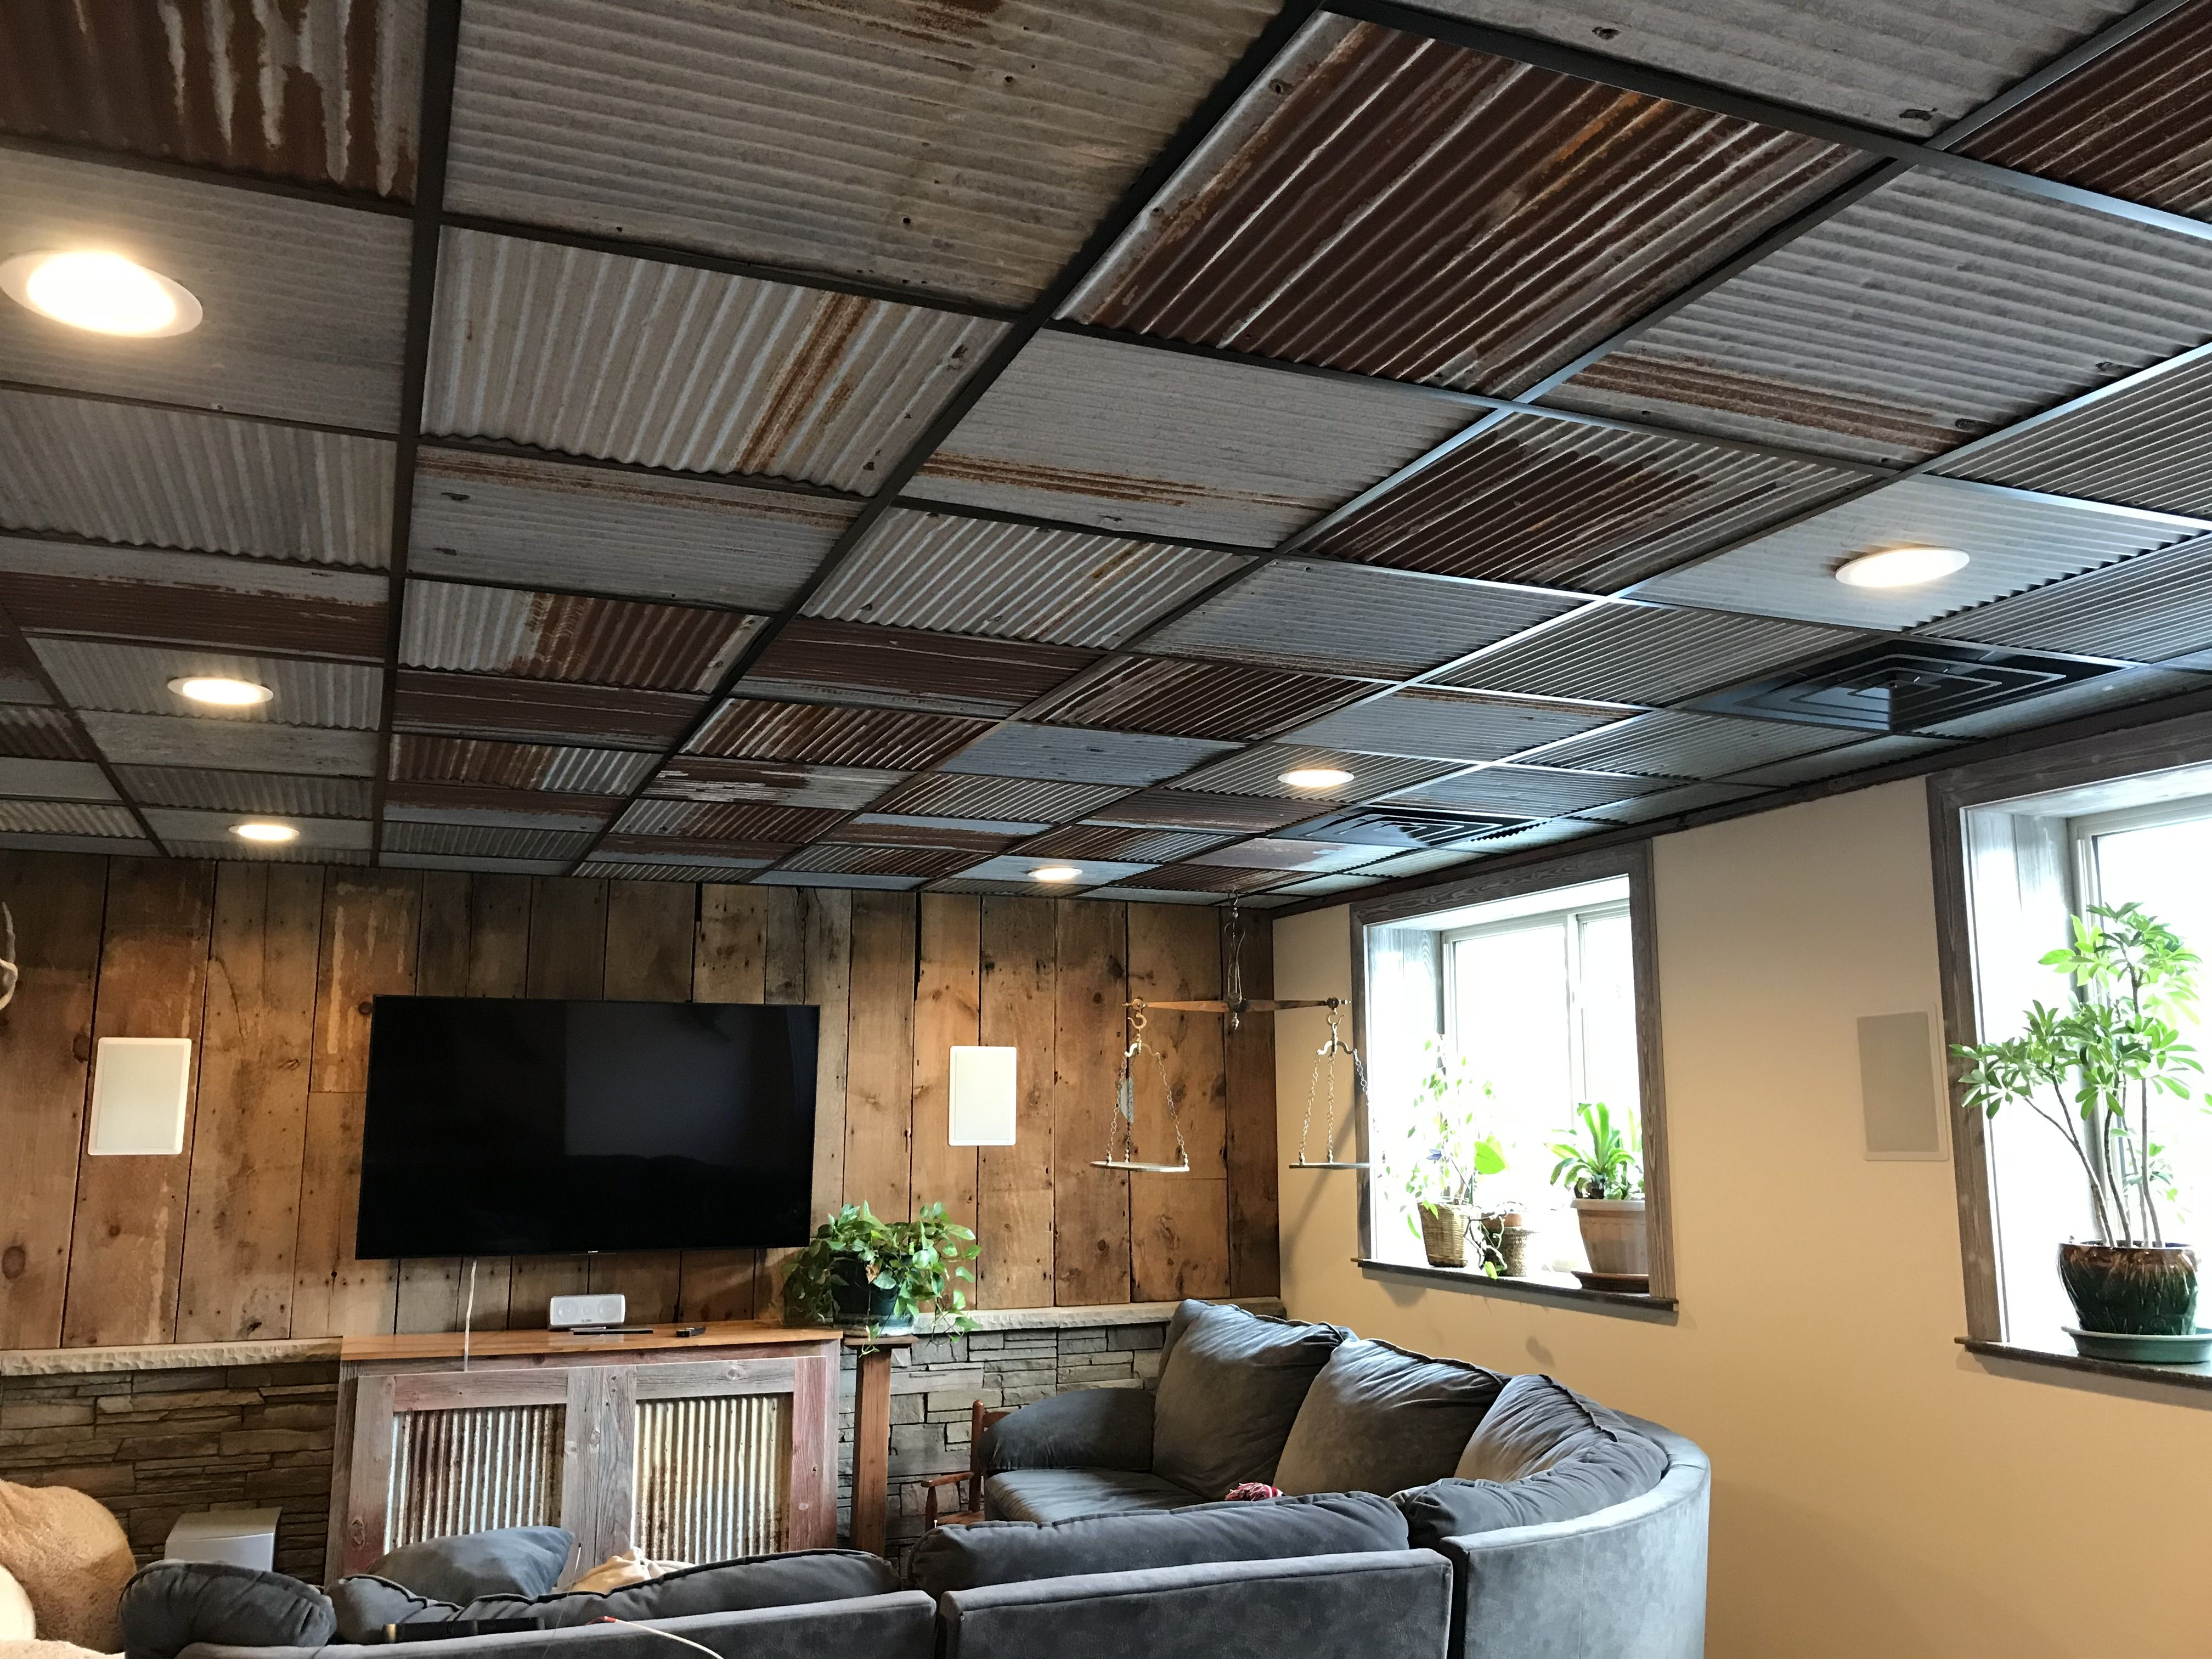 Basement Entertainment Room With Barn Tin Ceiling Tiles From